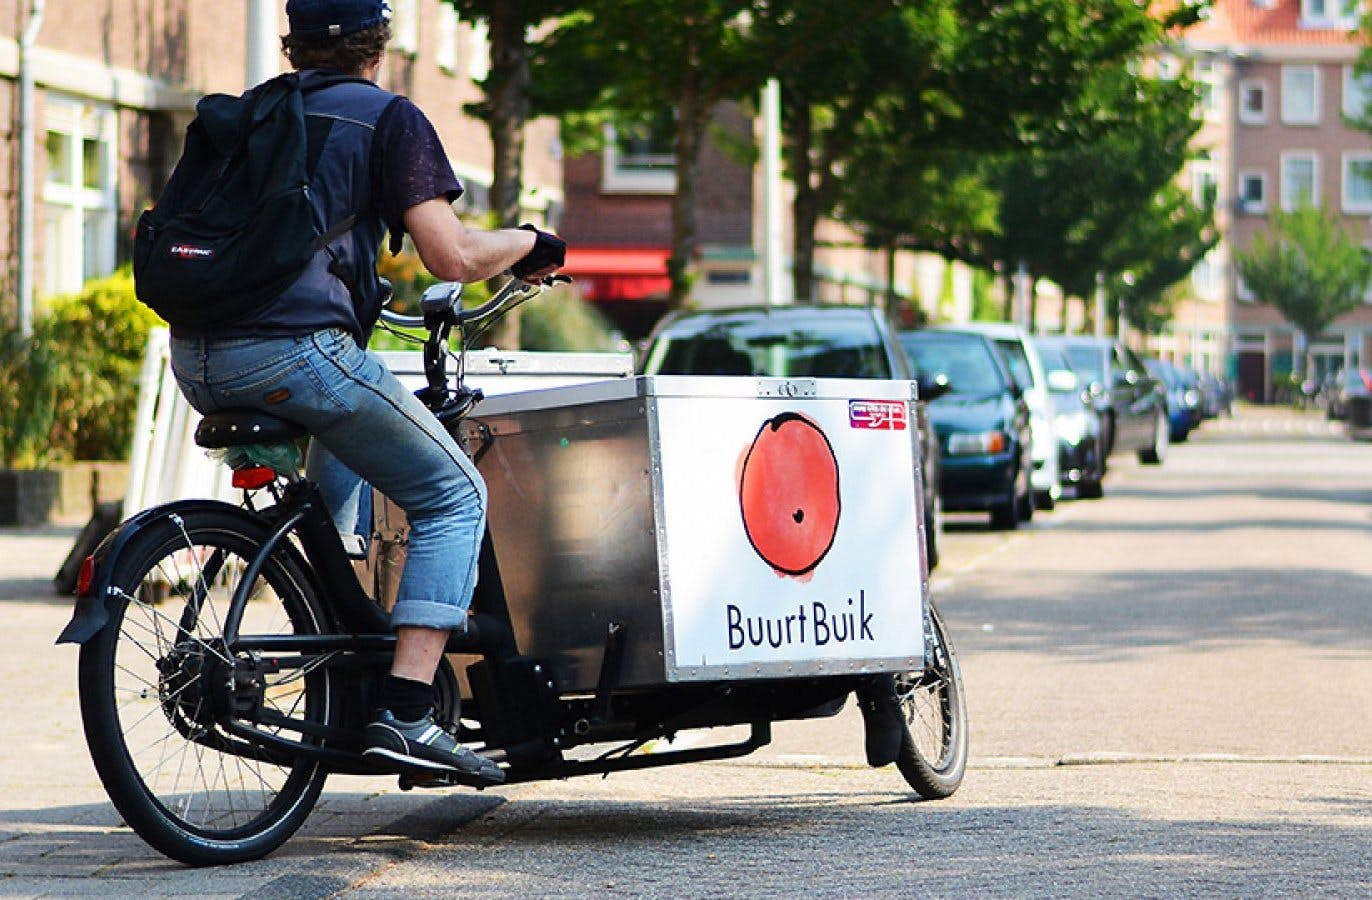 Community Meets Sustainability: How BuurtBuik is bringing people together  while fighting food waste